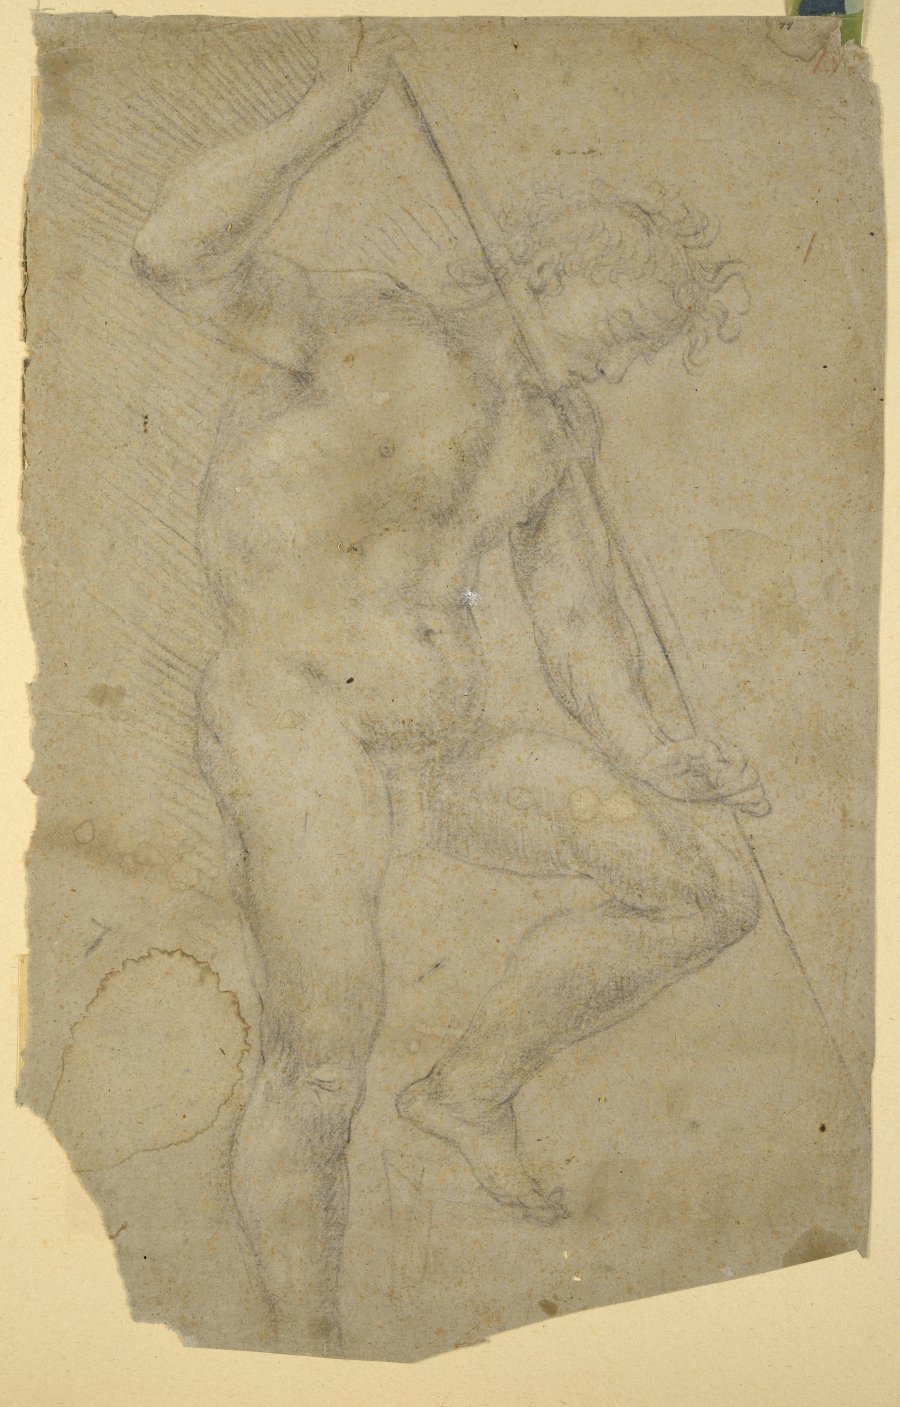 TWO MALE NUDES